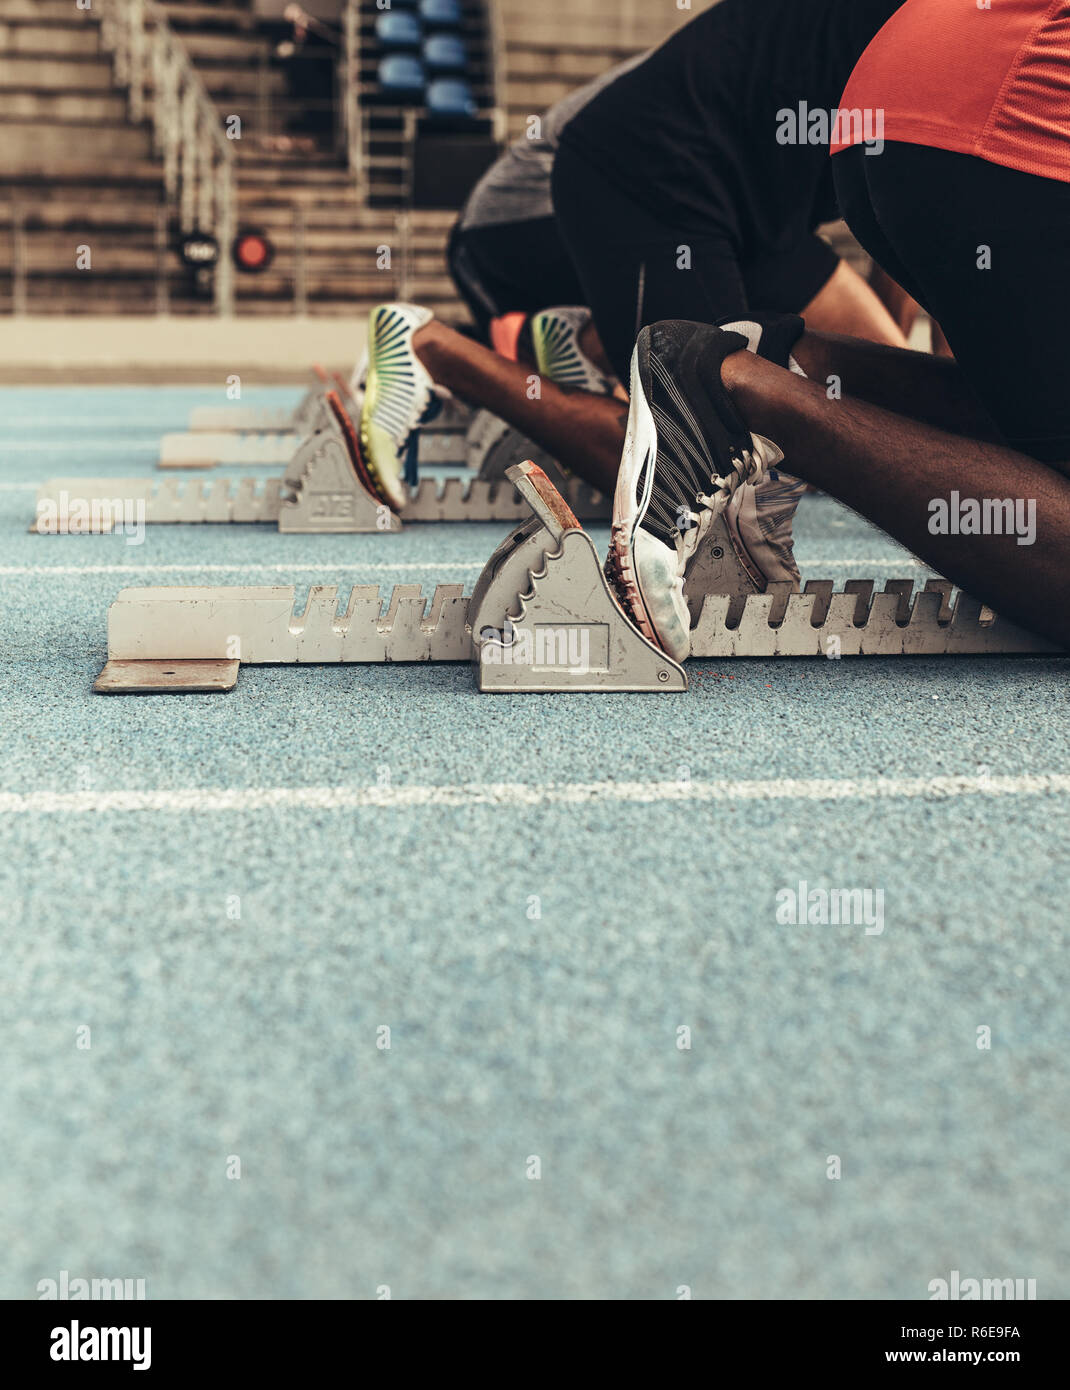 Sprinters on their mark ready to sprint on an all weather running track. Runners using a starting block to start their run on the race track. - Stock Image